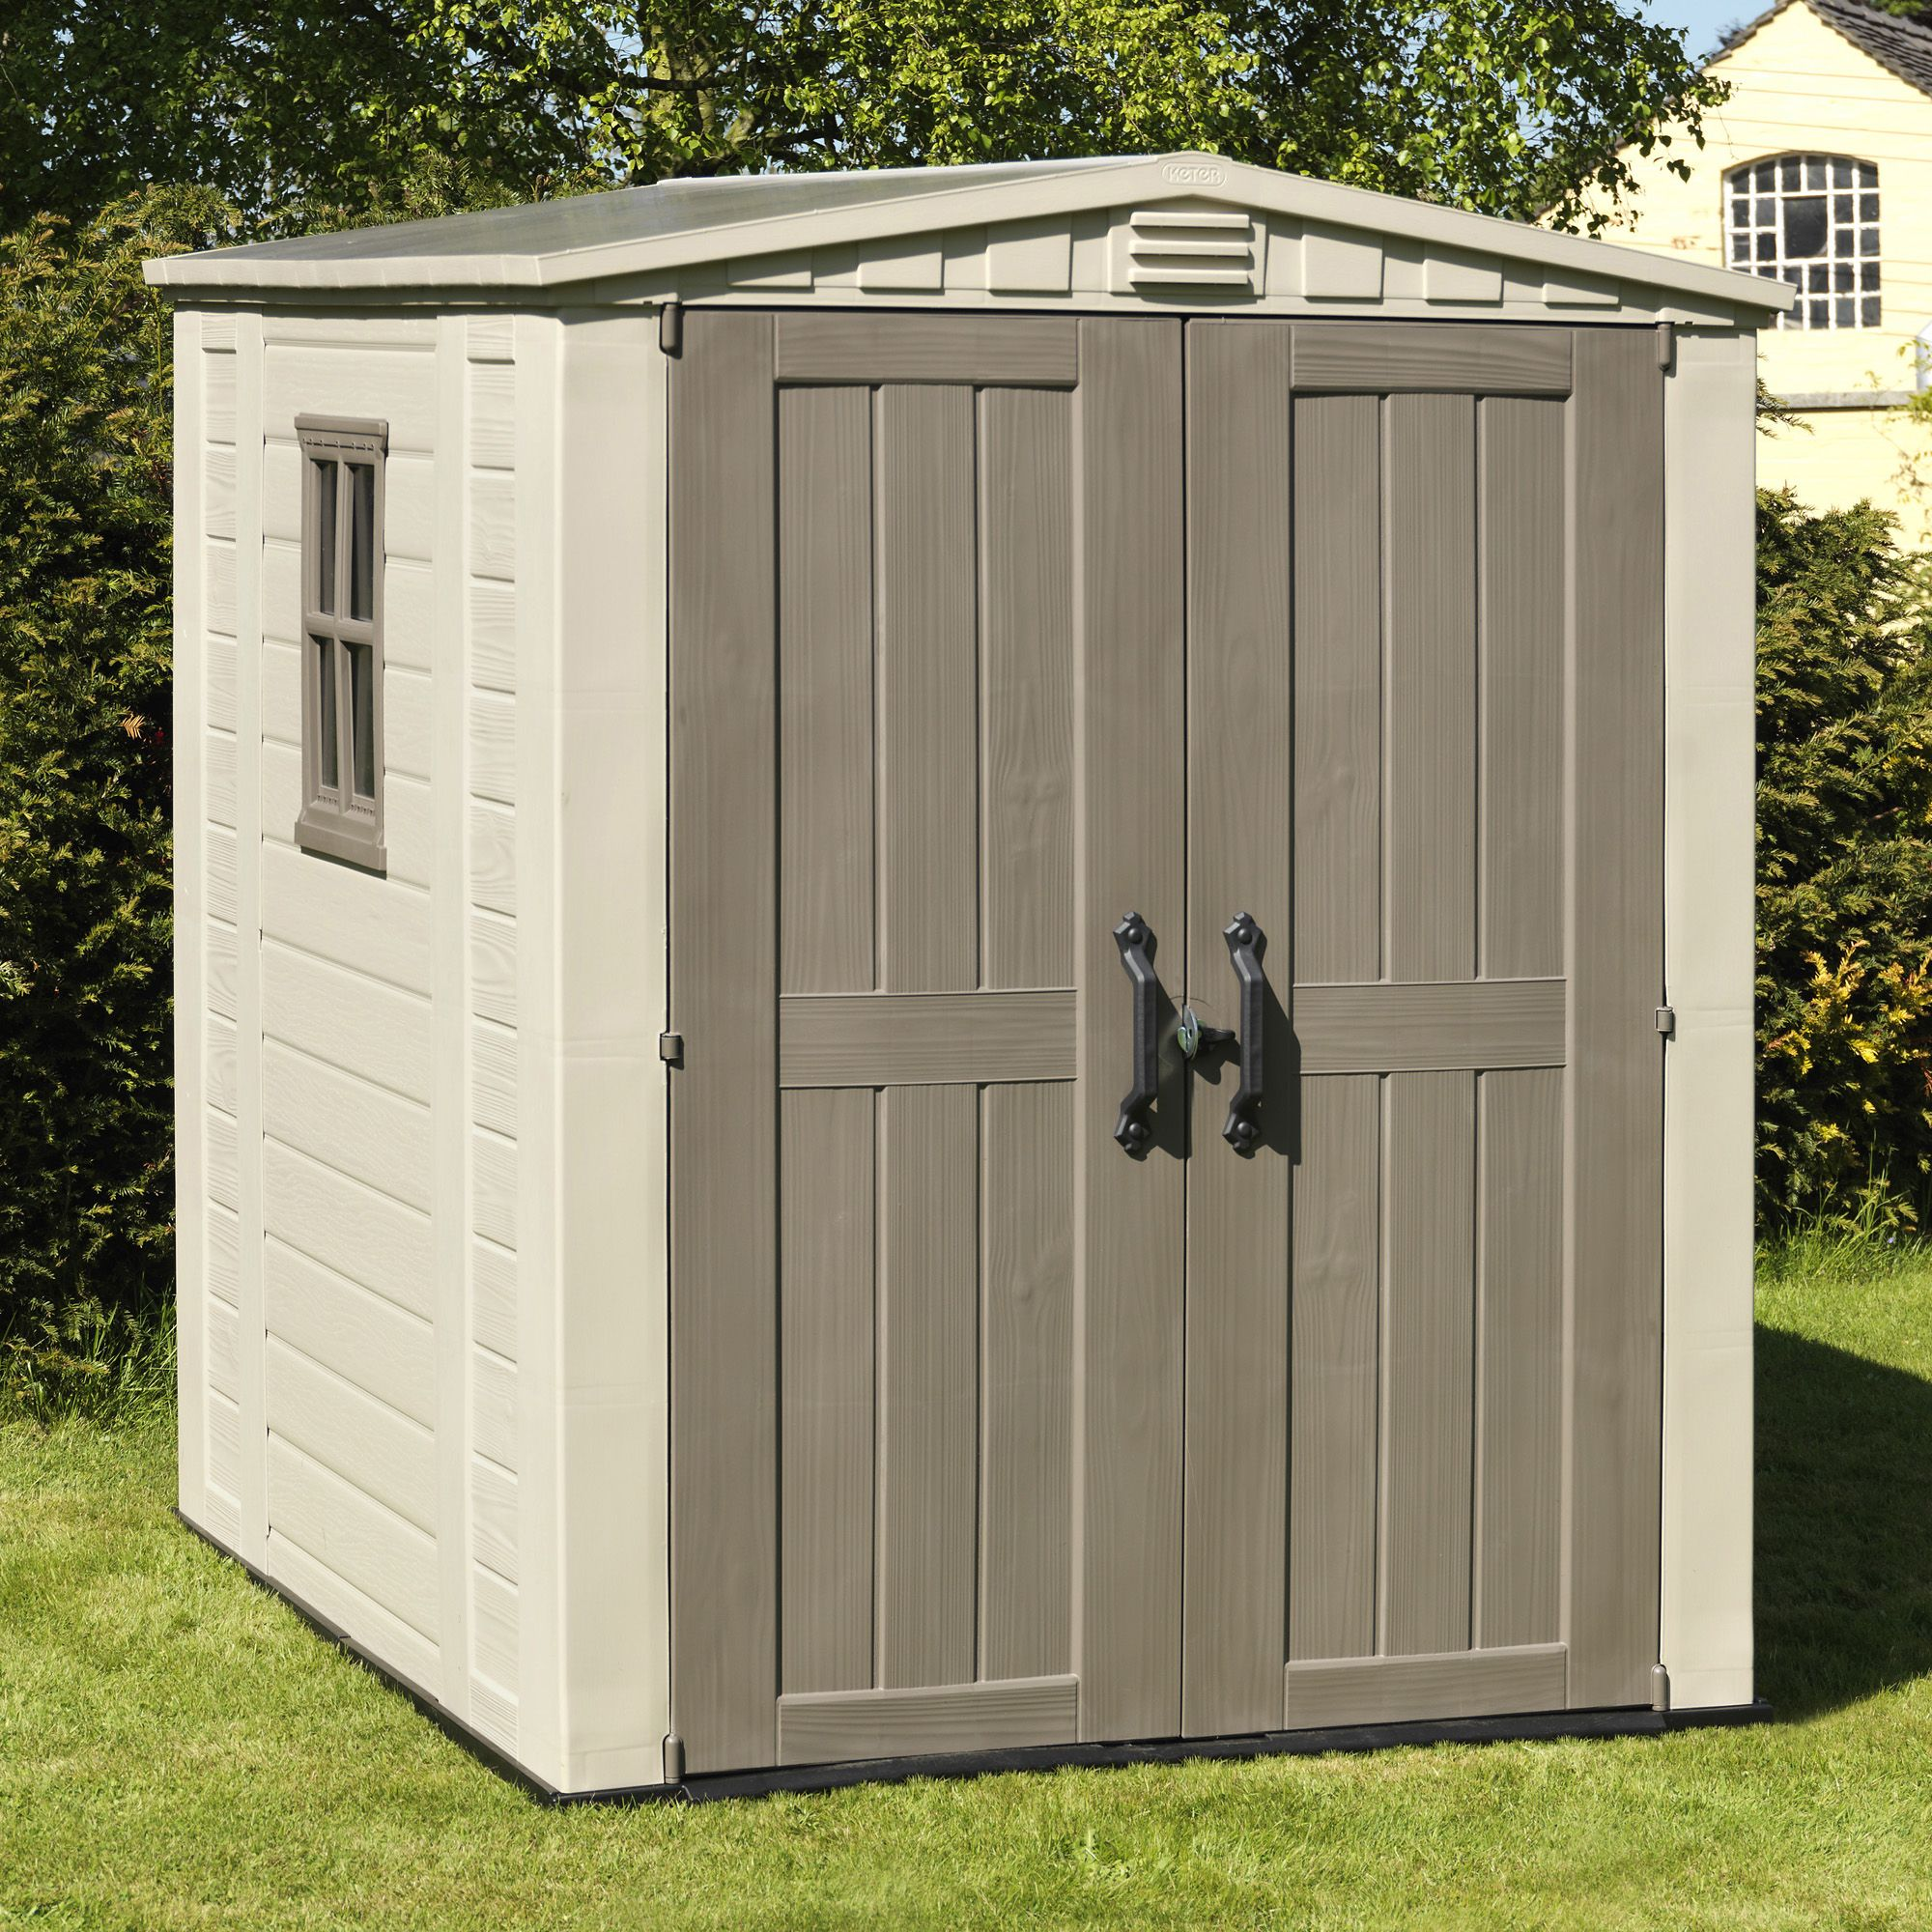 plastic garden shed 6x6 factor apex plastic shed | departments | diy at bu0026q DNGWUPJ